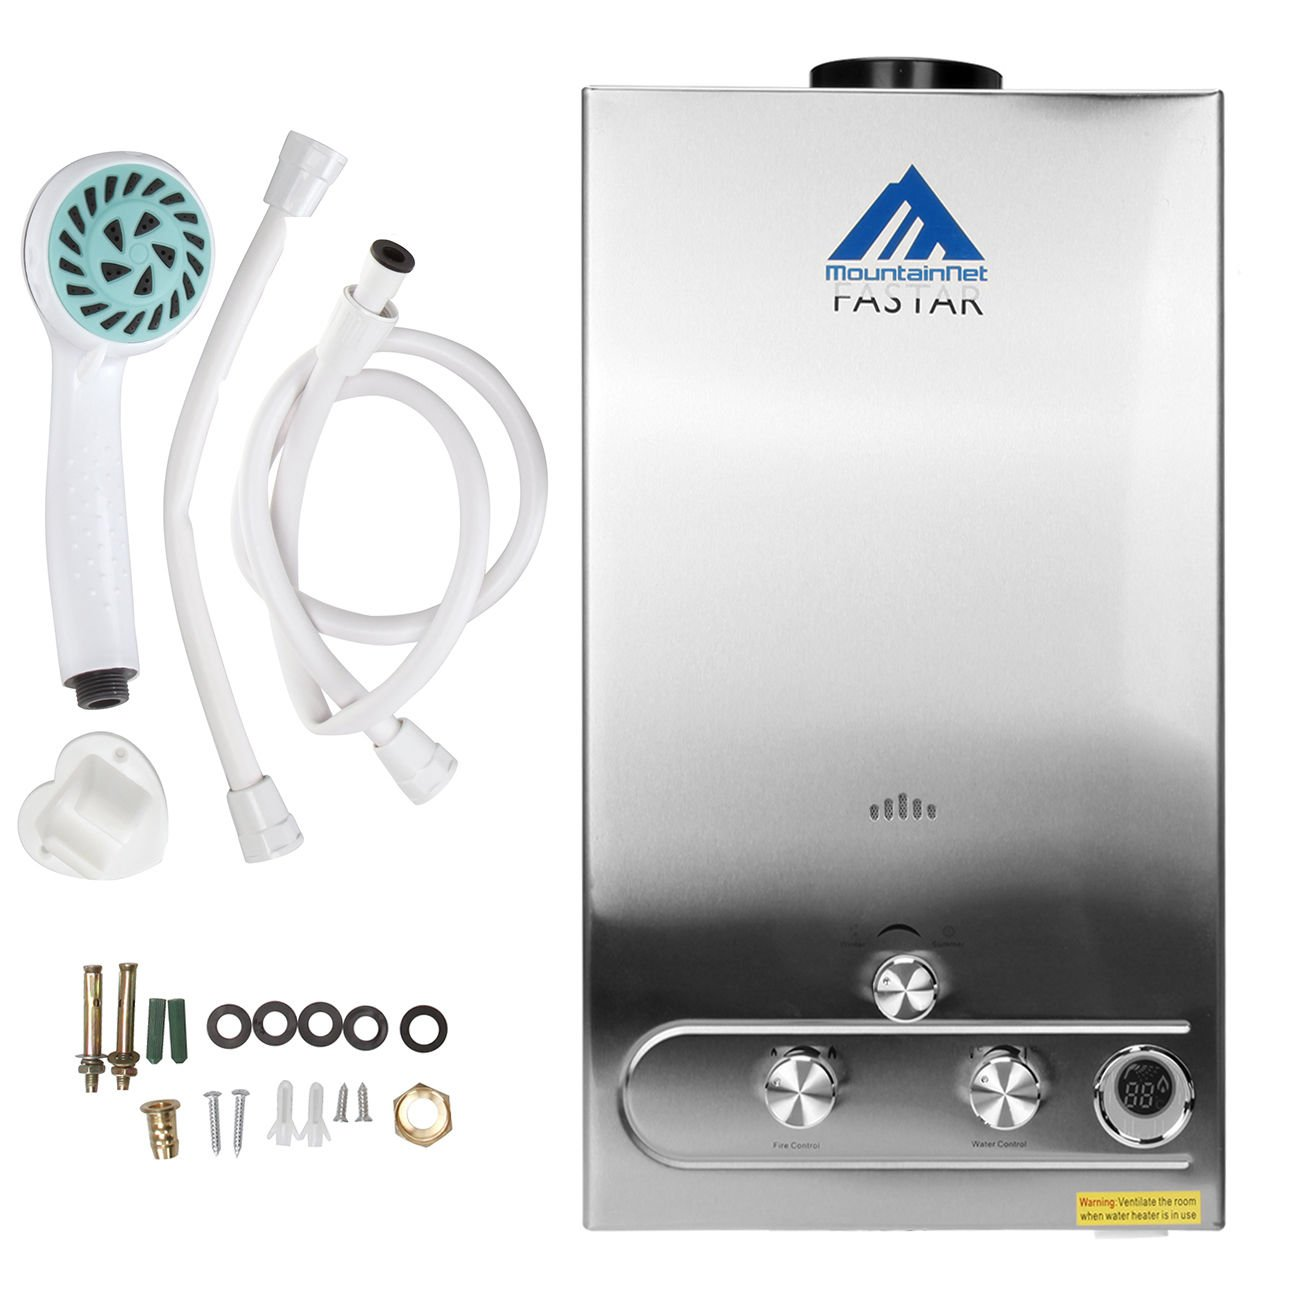 Ridgeyard 8L 2GPM LPG Propane Gas Tankless Instant Hot Water Heater Boiler Burner with Shower Head